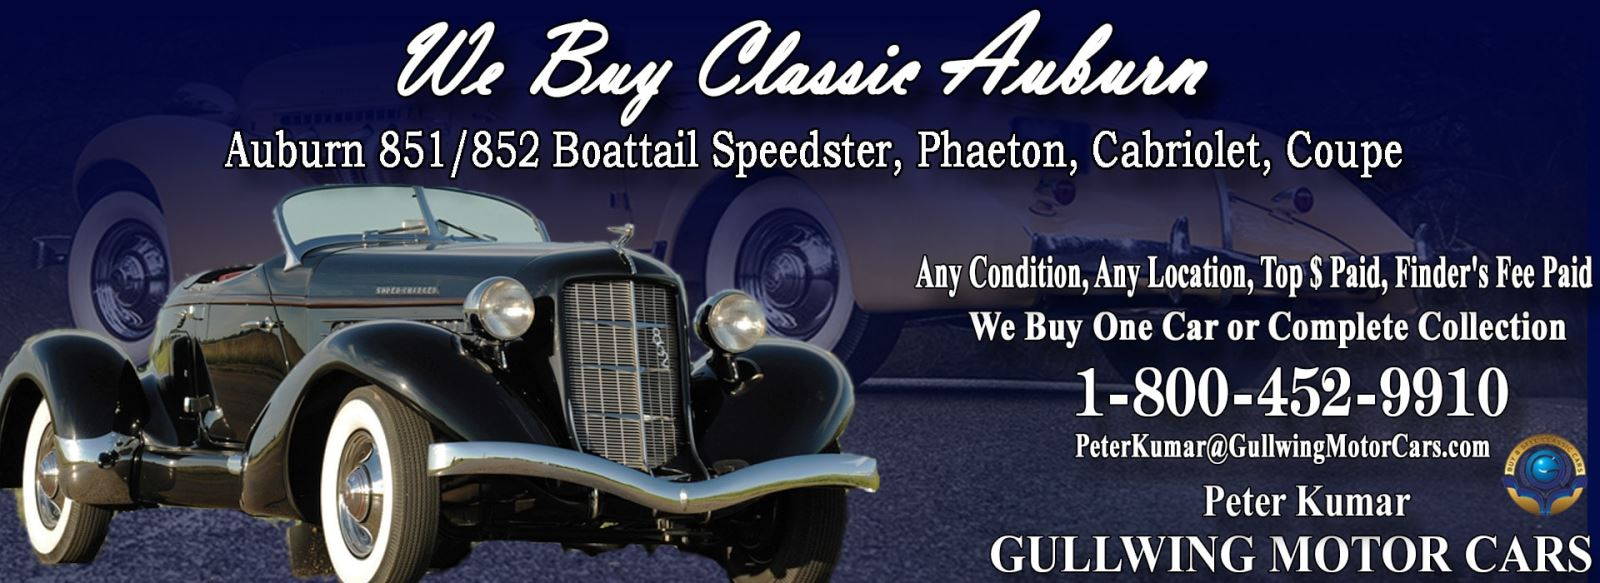 Classic Auburn for sale, we buy vintage Auburn. Call Peter Kumar. Gullwing Motor